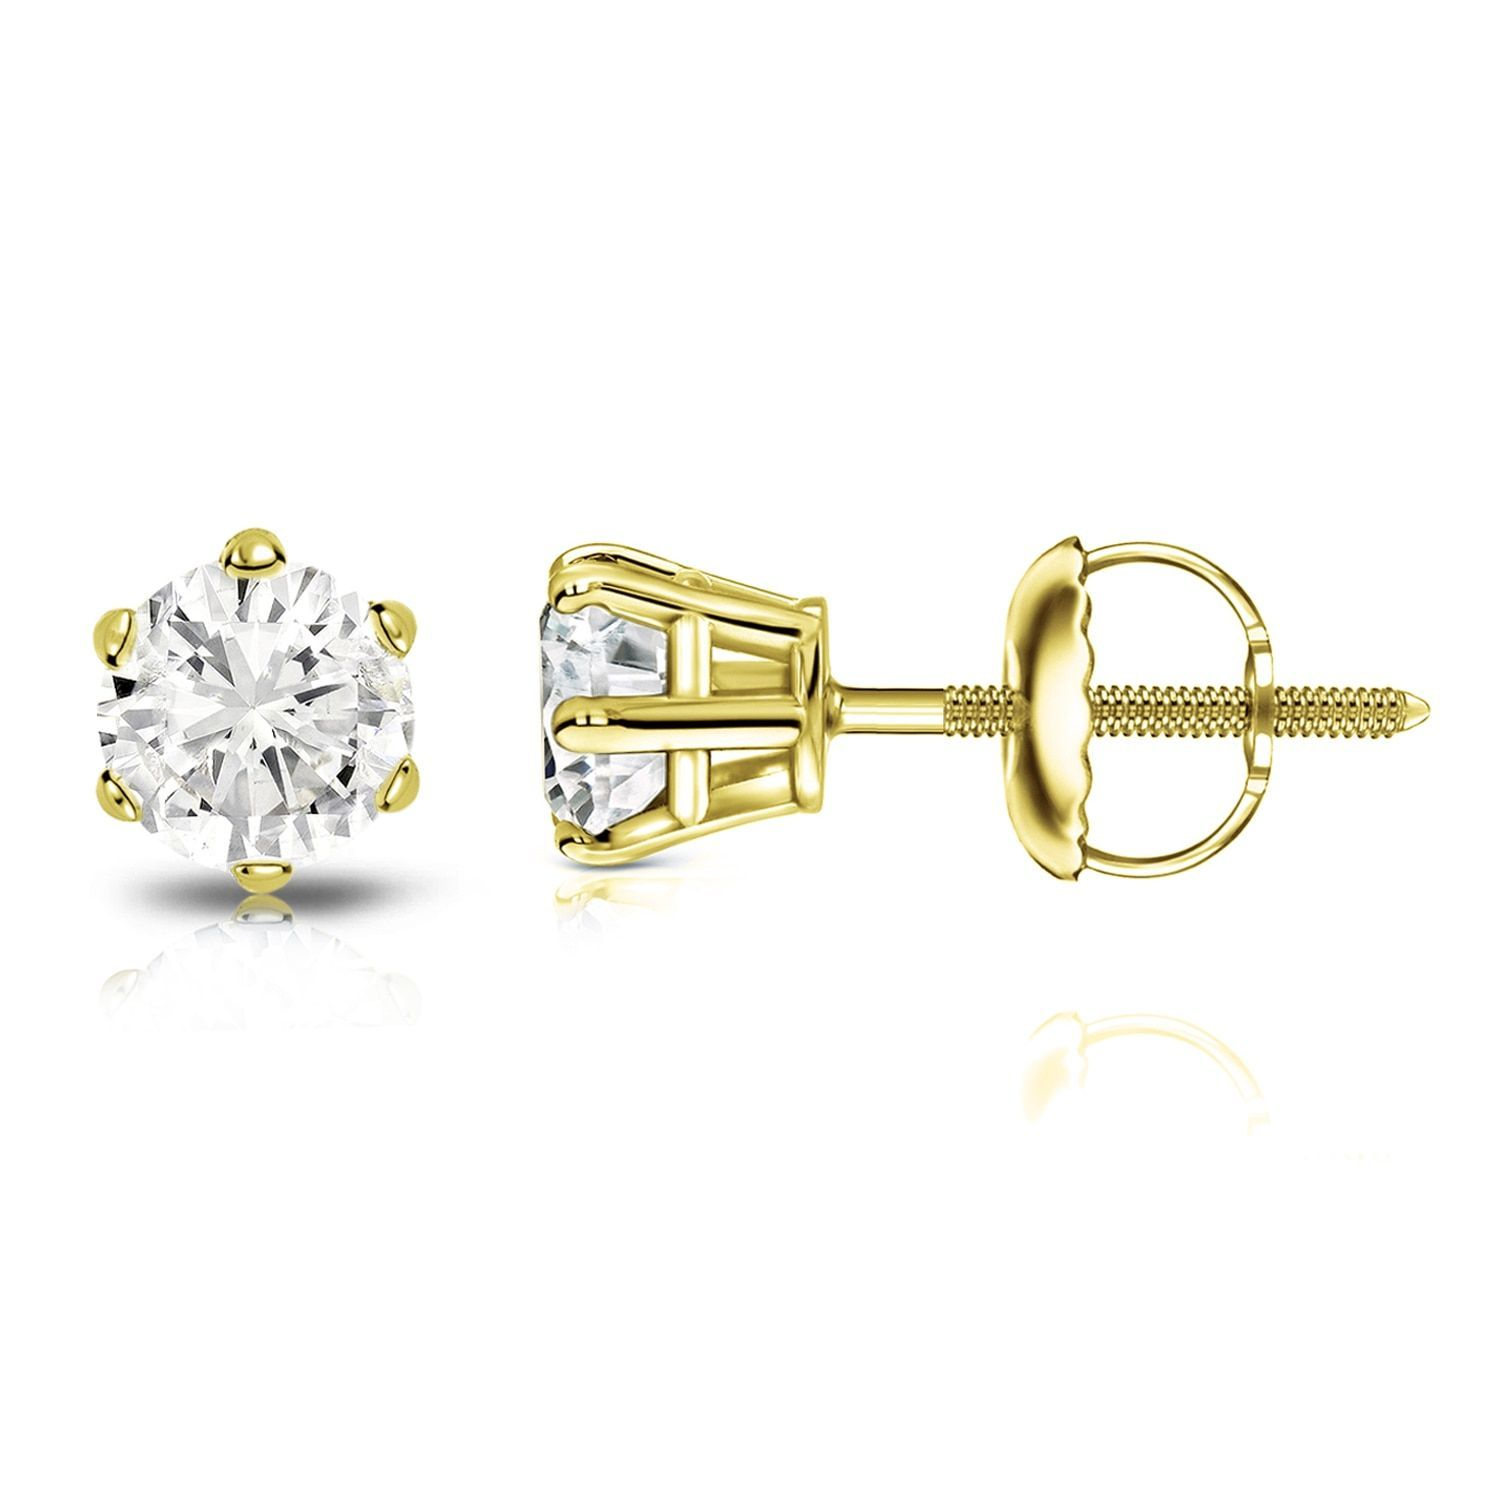 Auriya 14k Gold 4ct TDW 6 Prong Screw Back Round Diamond Stud